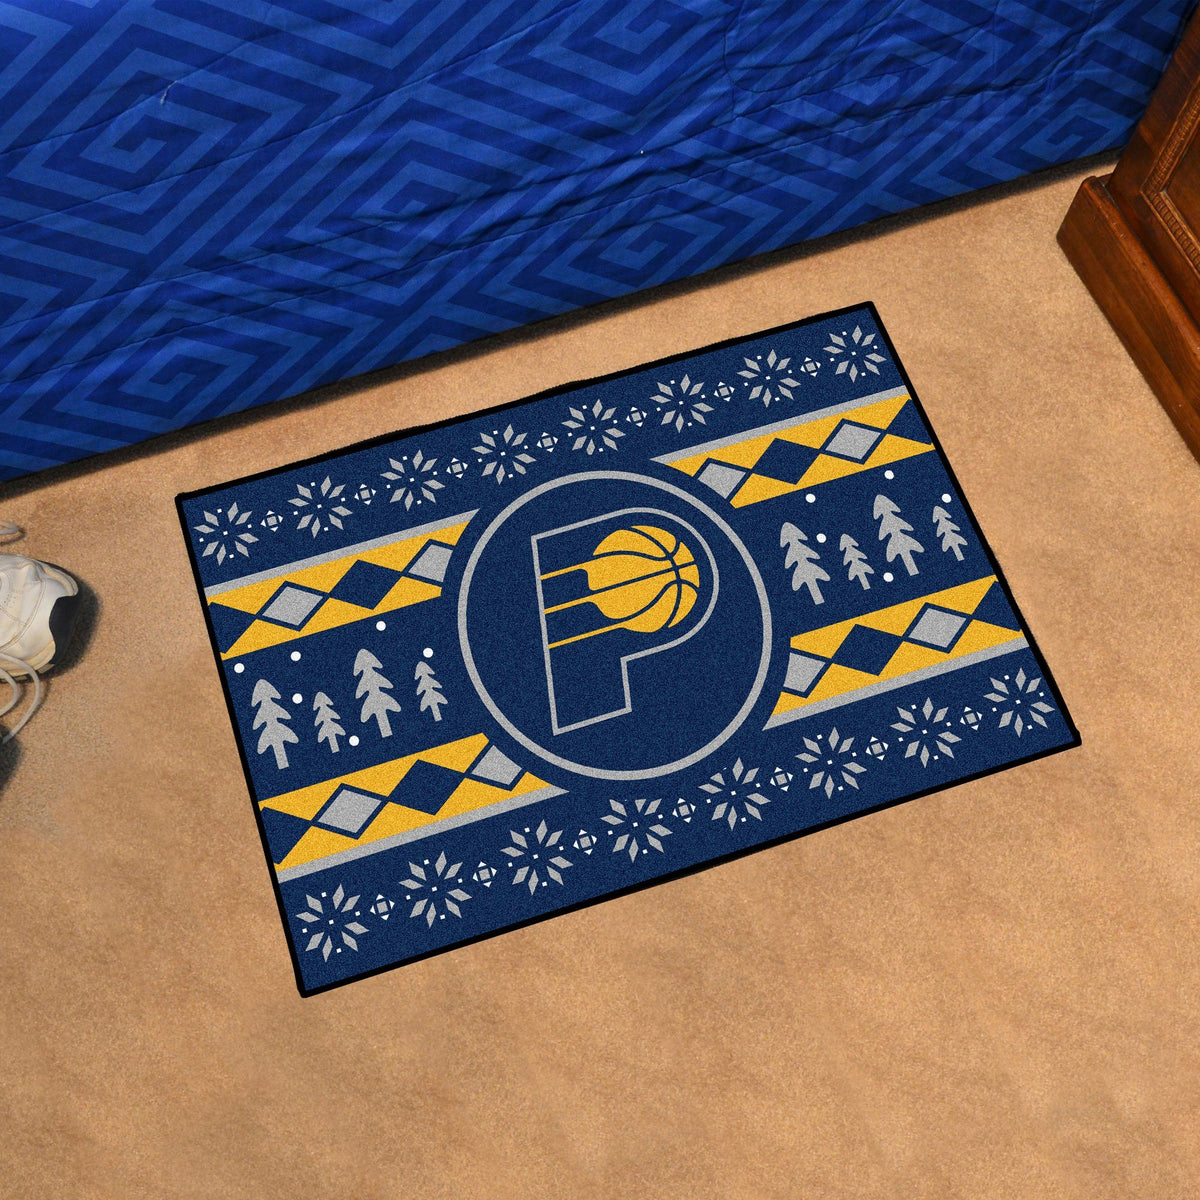 NBA - Holiday Sweater Starter Mat NBA Mats, Rectangular Mats, Holiday Sweater Starter Mat, NBA, Home Fan Mats Indiana Pacers